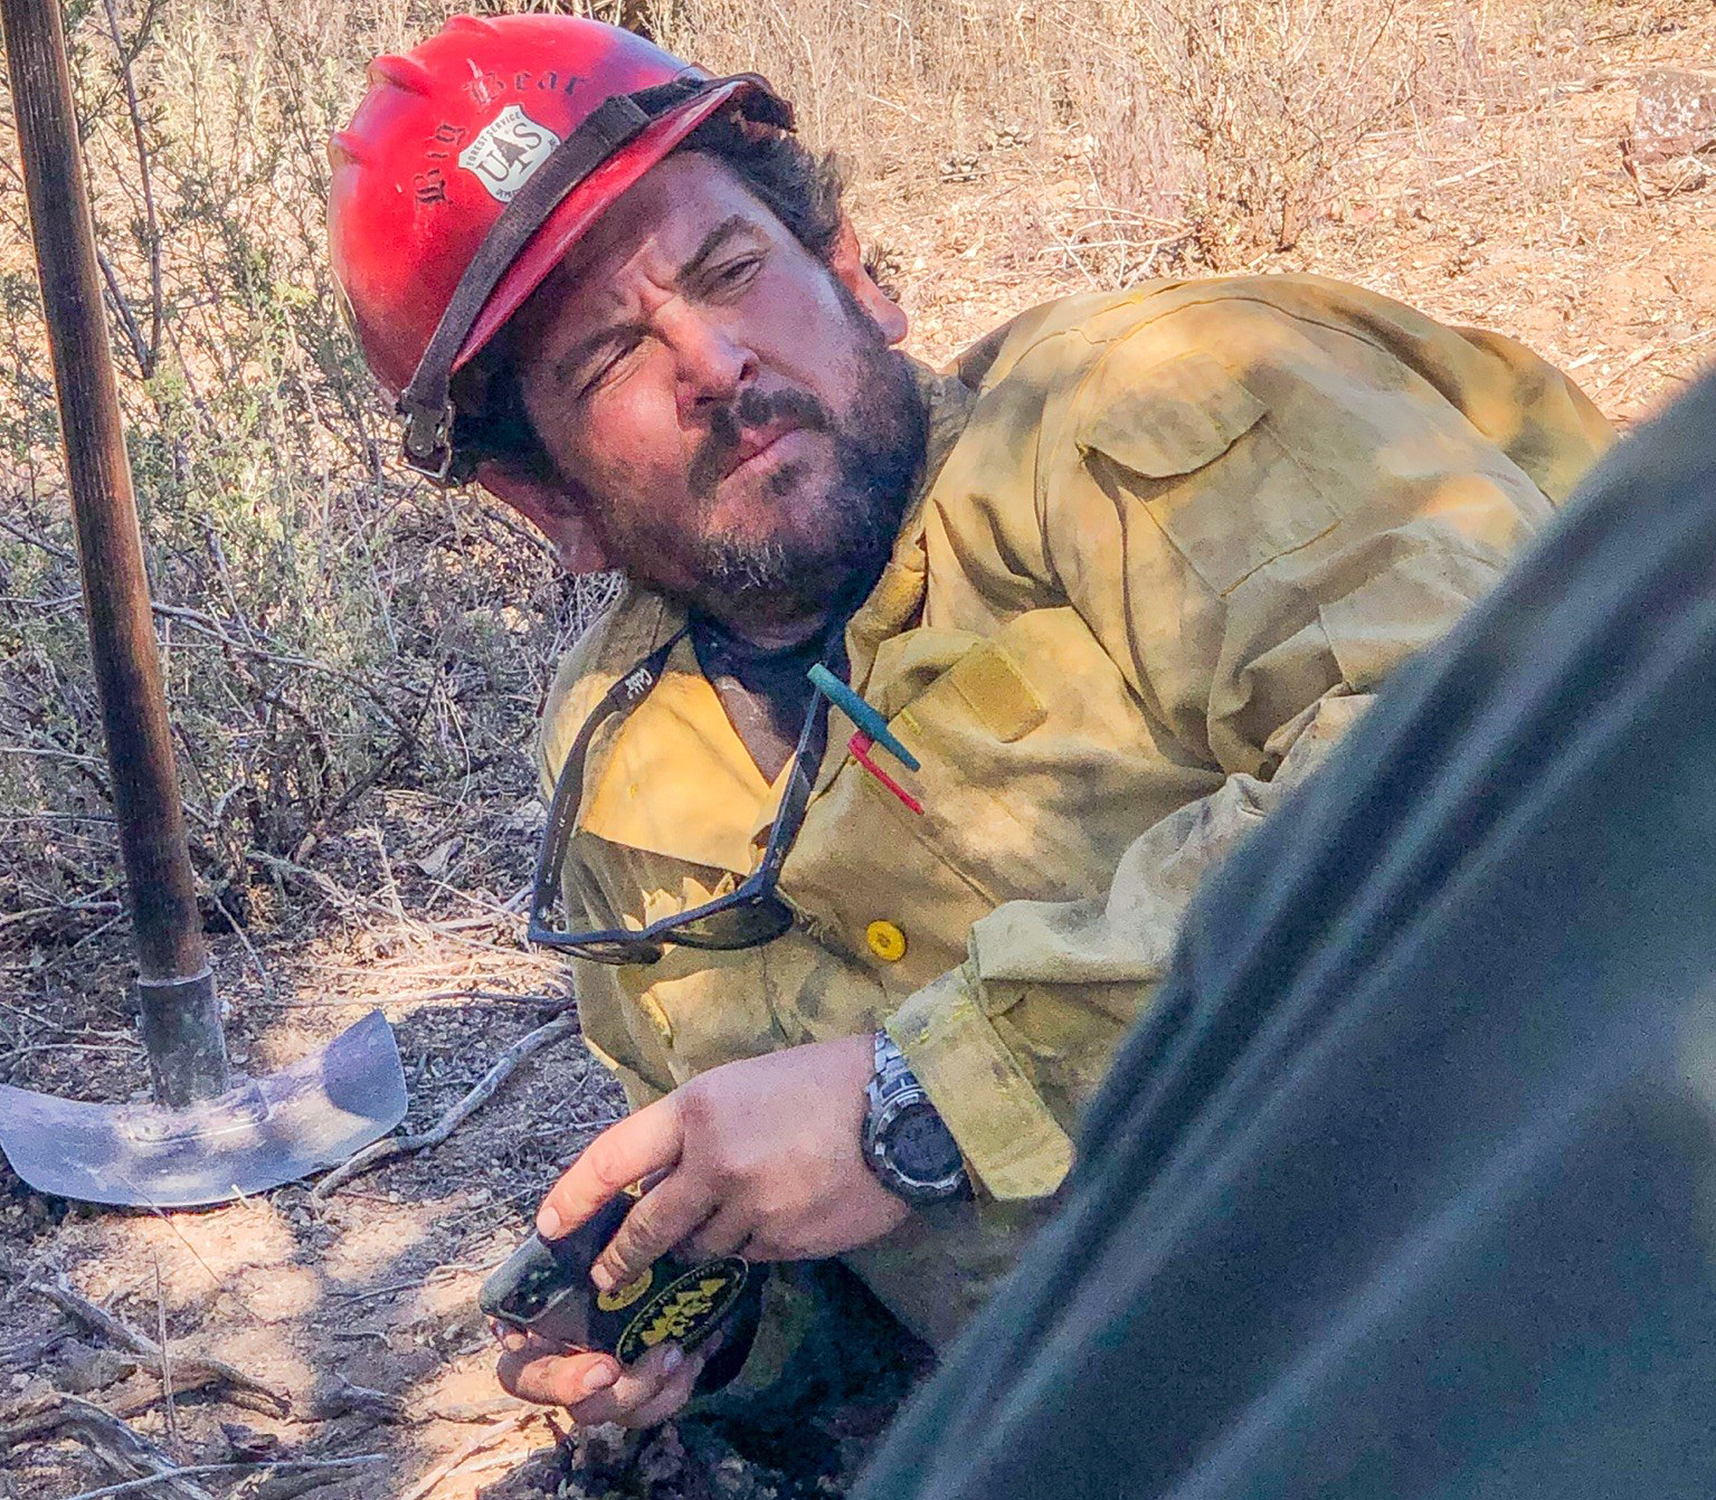 firefighter killed in wildfire identified as 39 year old husband dad people com firefighter killed in wildfire